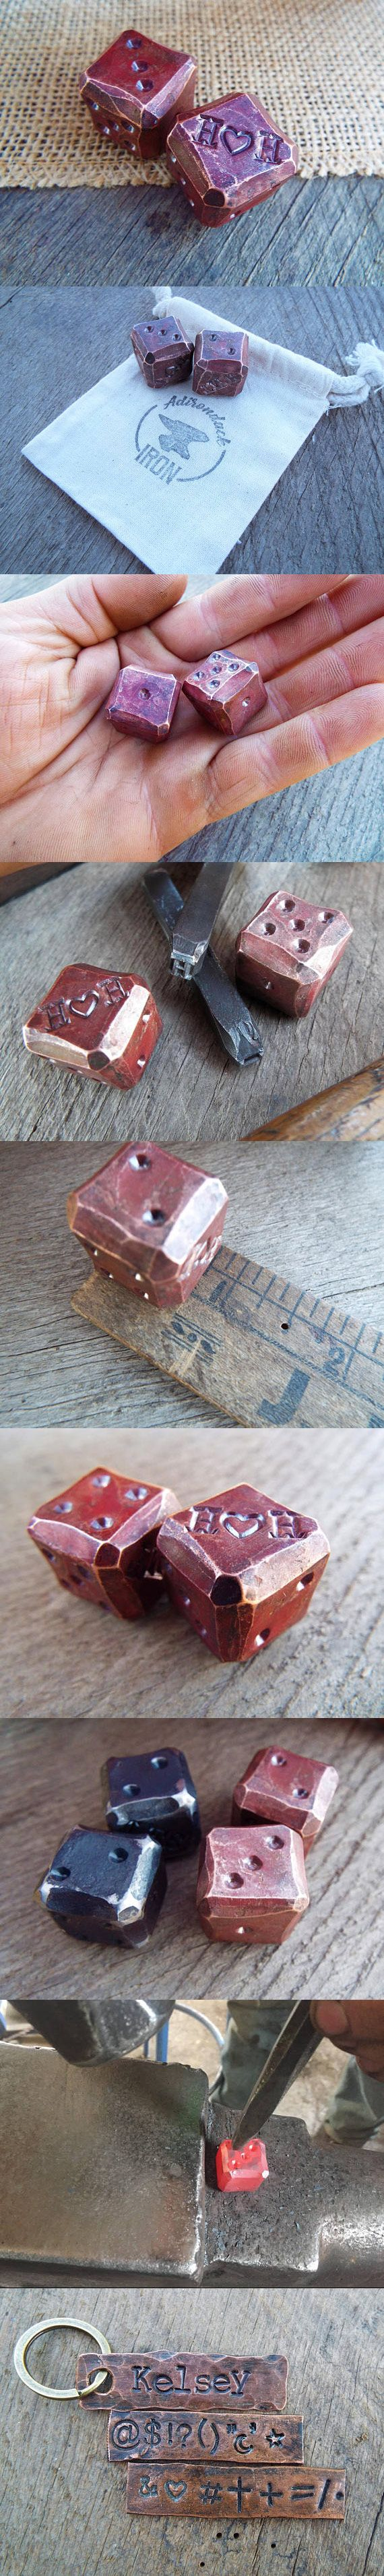 Blacksmith forged copper dice. 7th anniversary gift for him. Customized copper anniversary gift. Personalized dice. Customize gift handmade